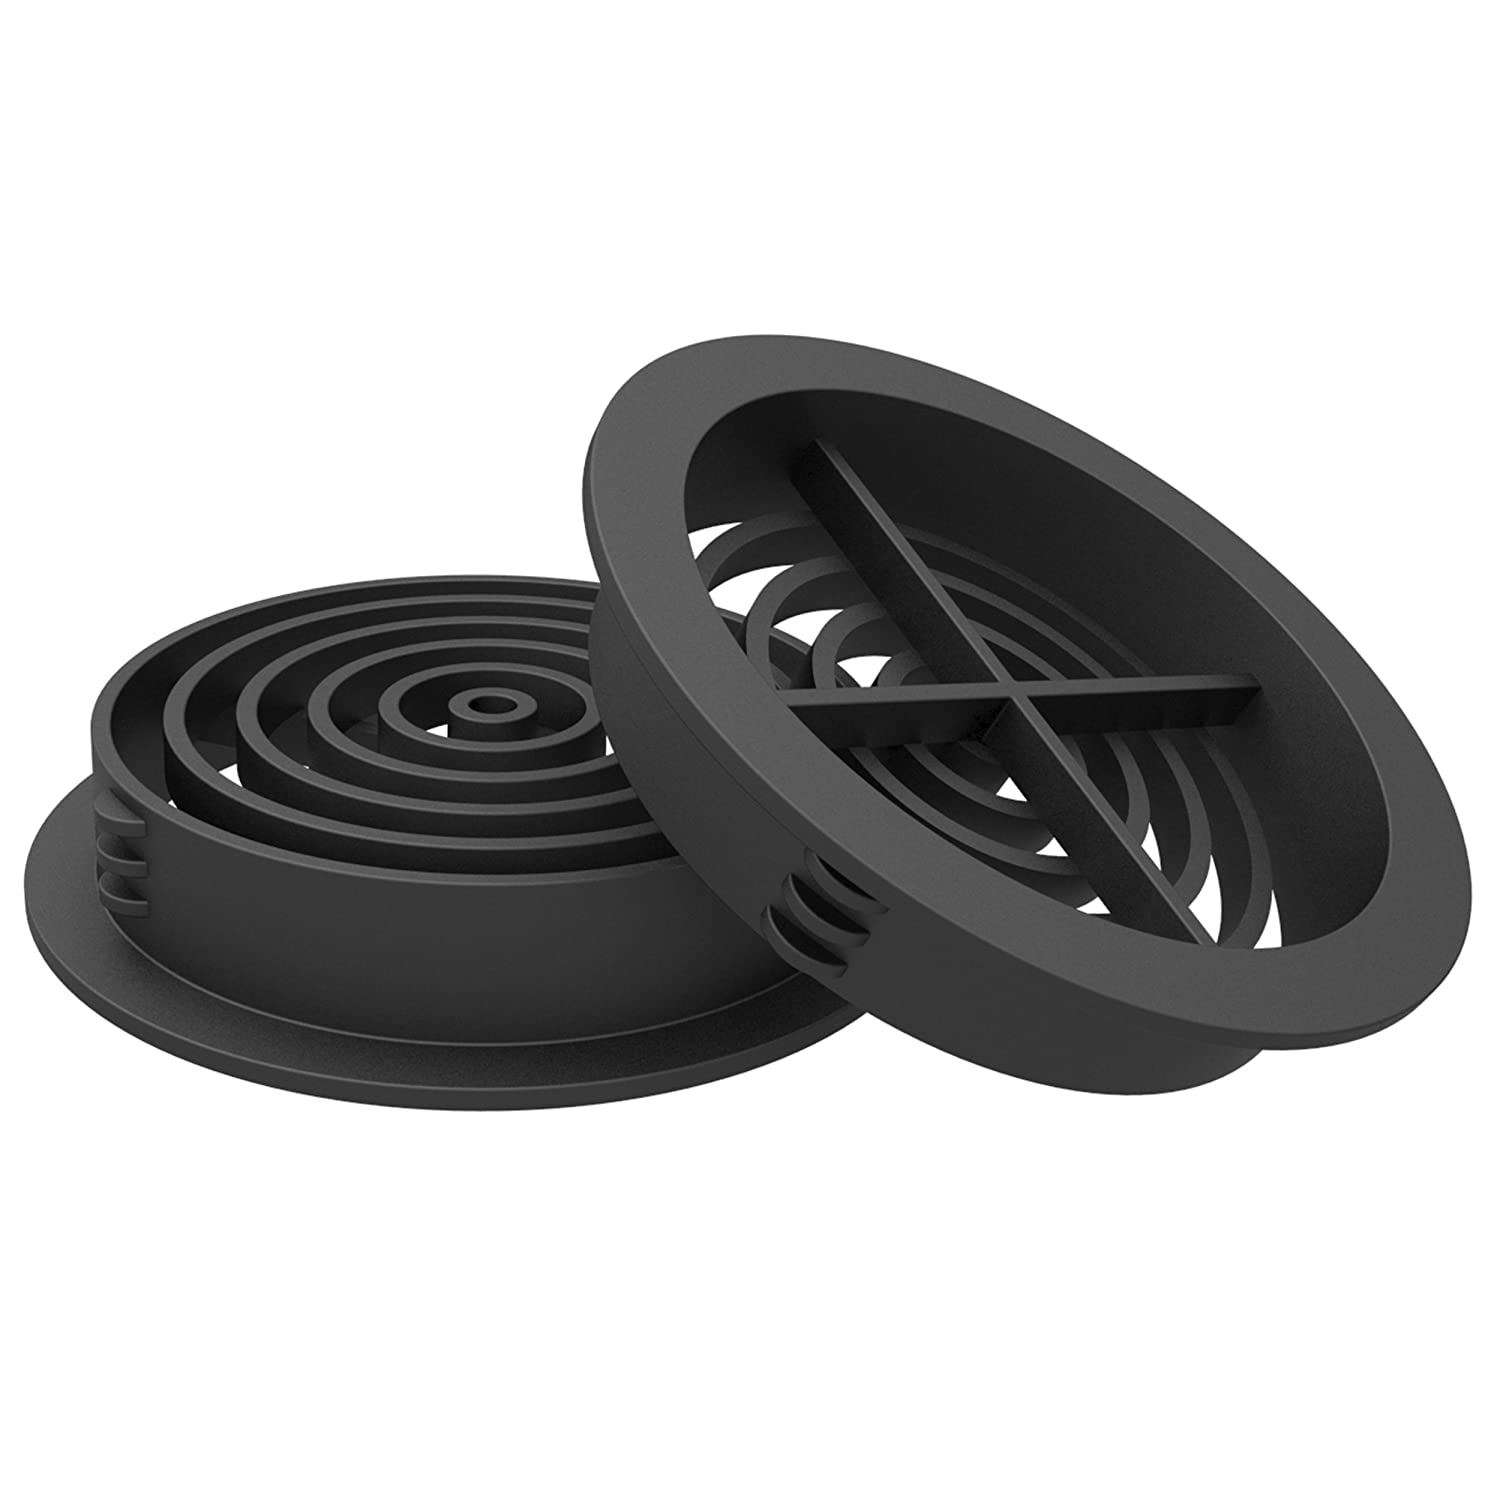 10 x 70mm Black Plastic Round Soffit Air Vents/Upvc Push in Roof Disc/Fascia Manthorpe